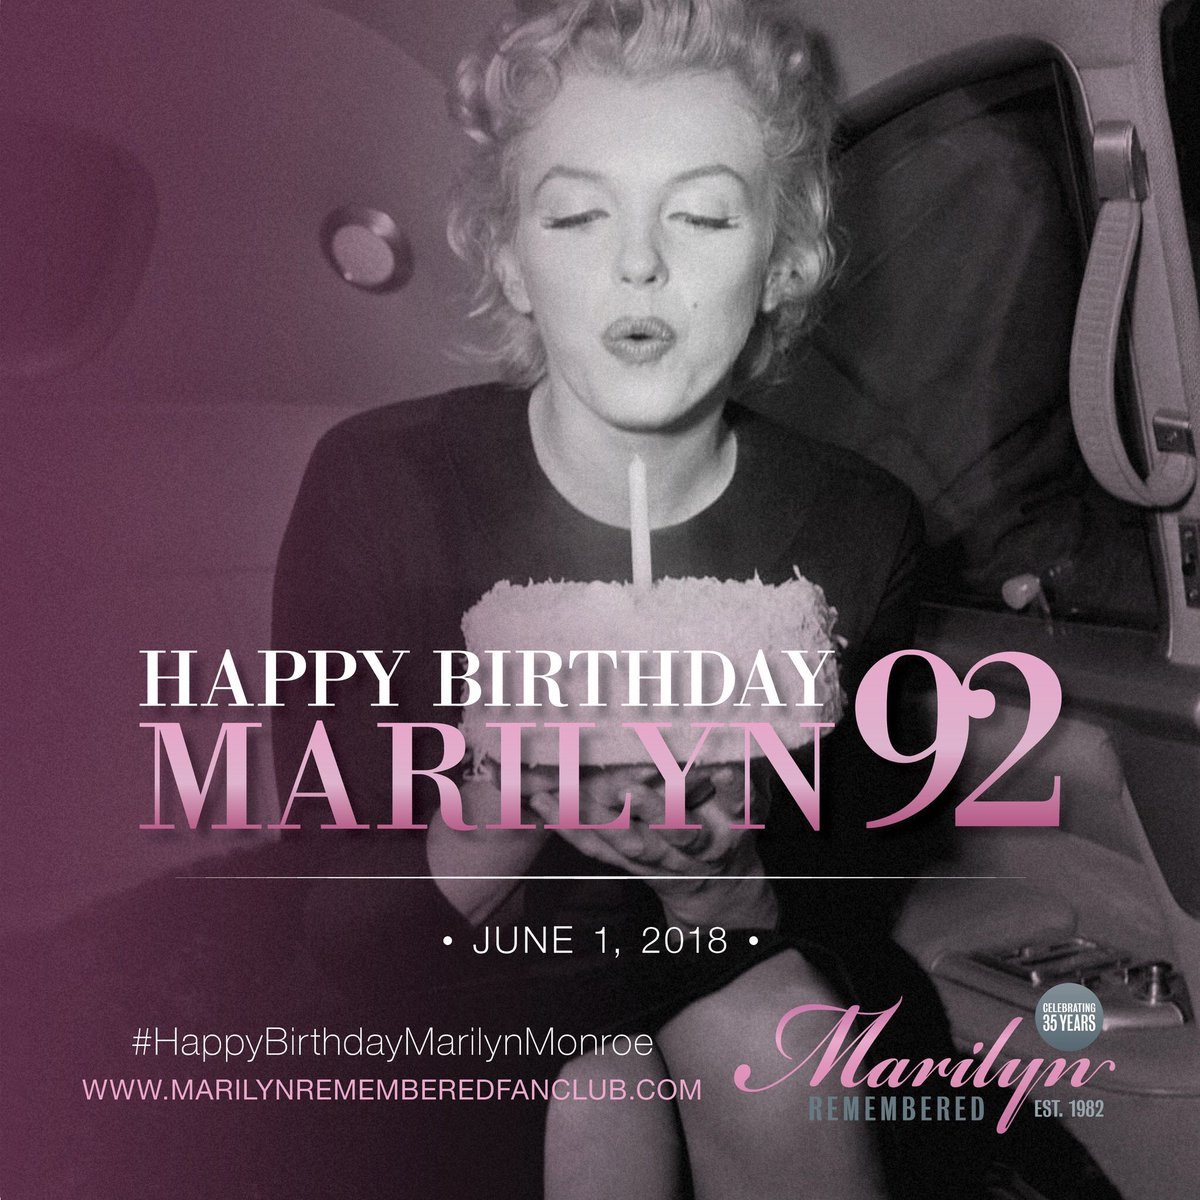 Marilyn Remembered On Twitter Happy Birthday Wishes Marilyn We Re Holding A Good Thought For You At Mmremembered Marilynmonroe